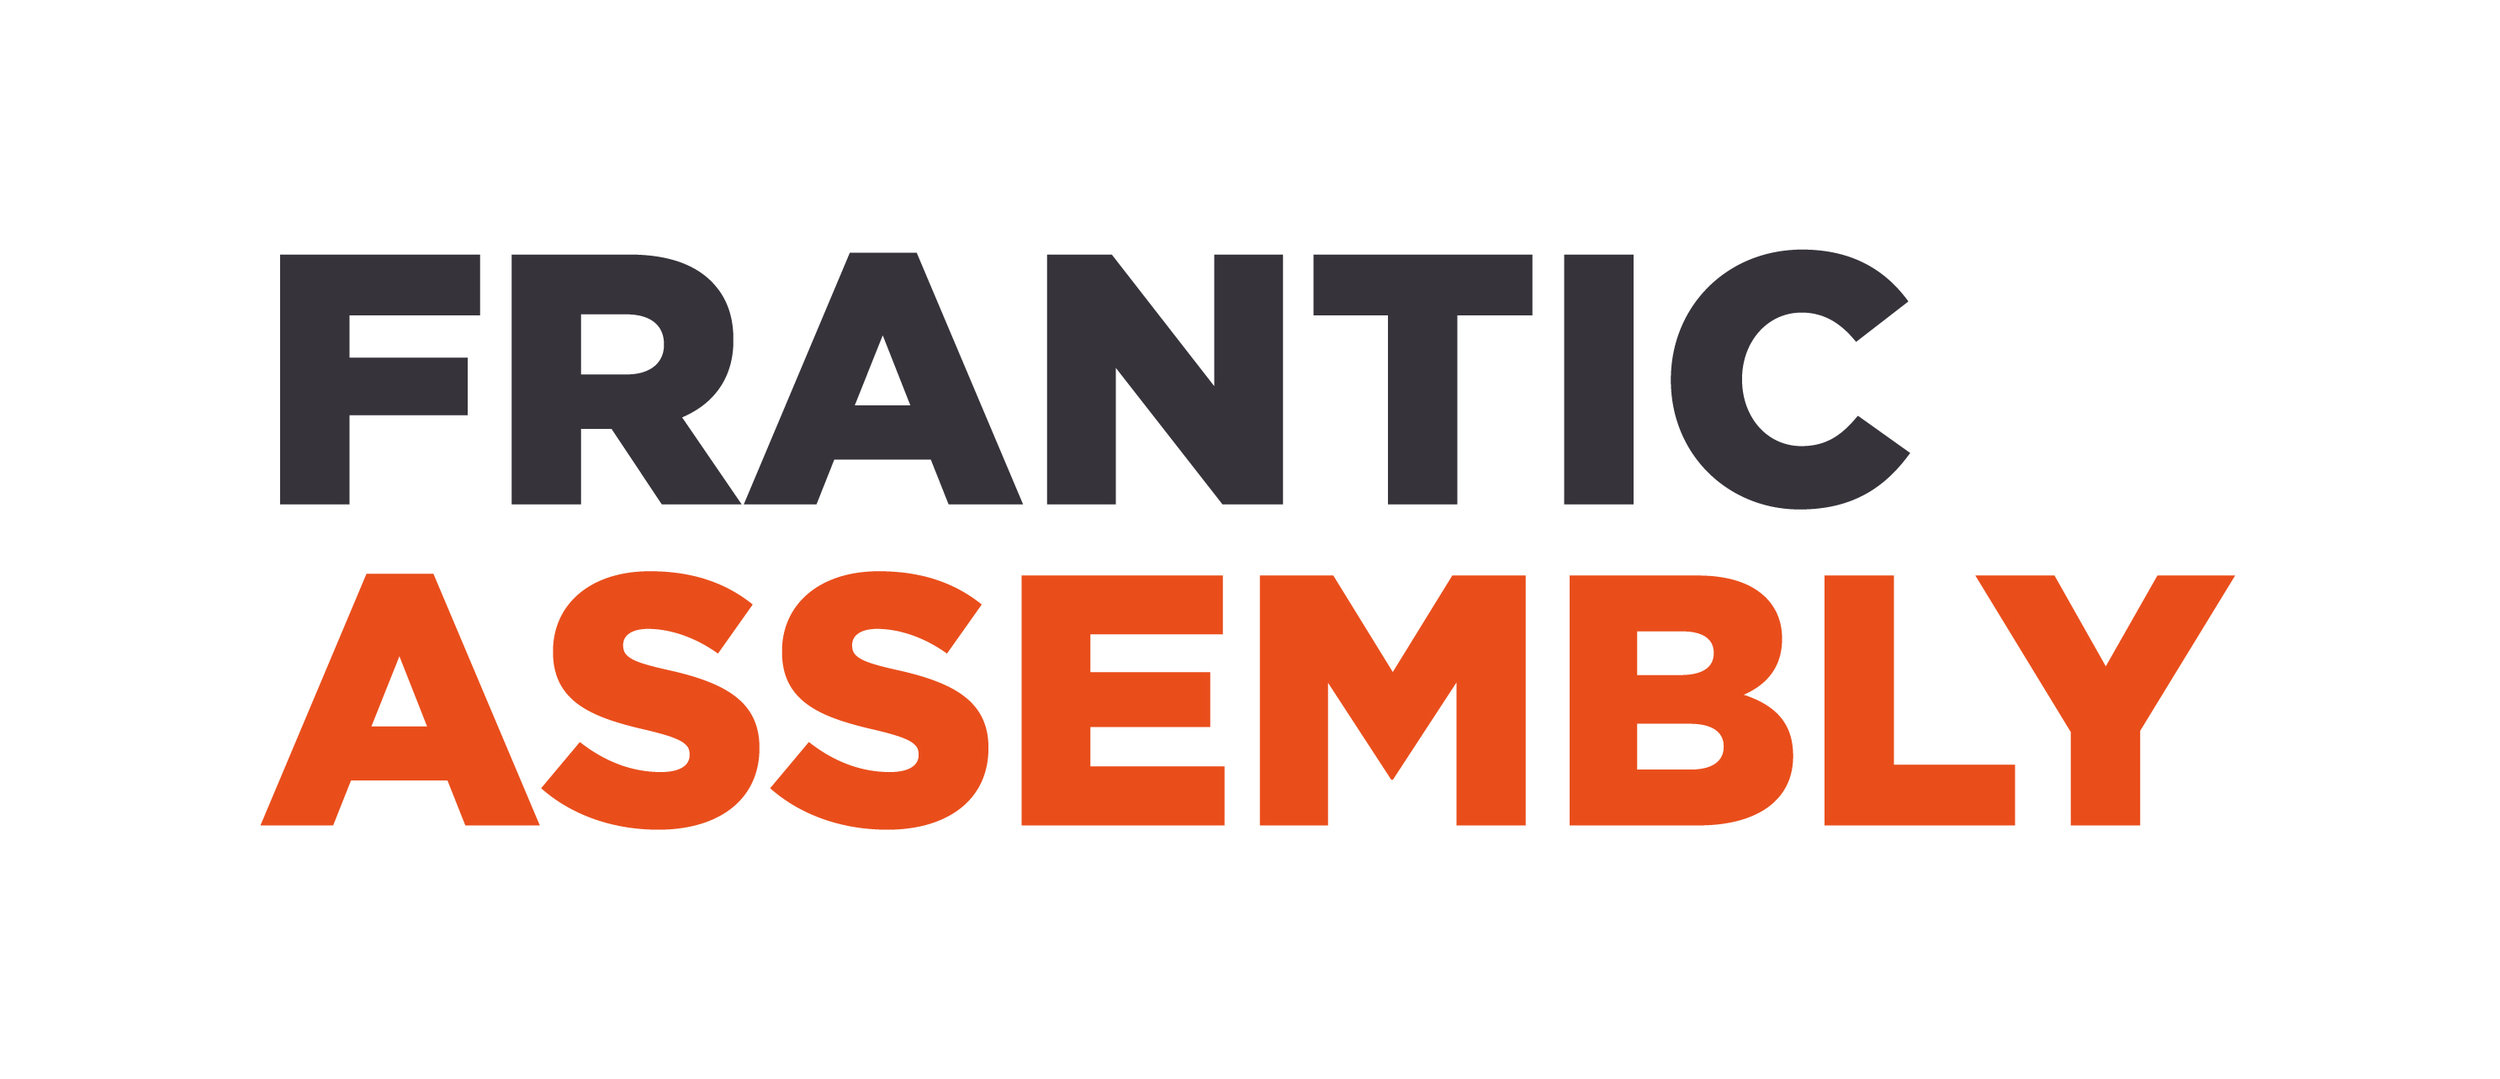 Frantic Assembly Current - Base Orange.jpg